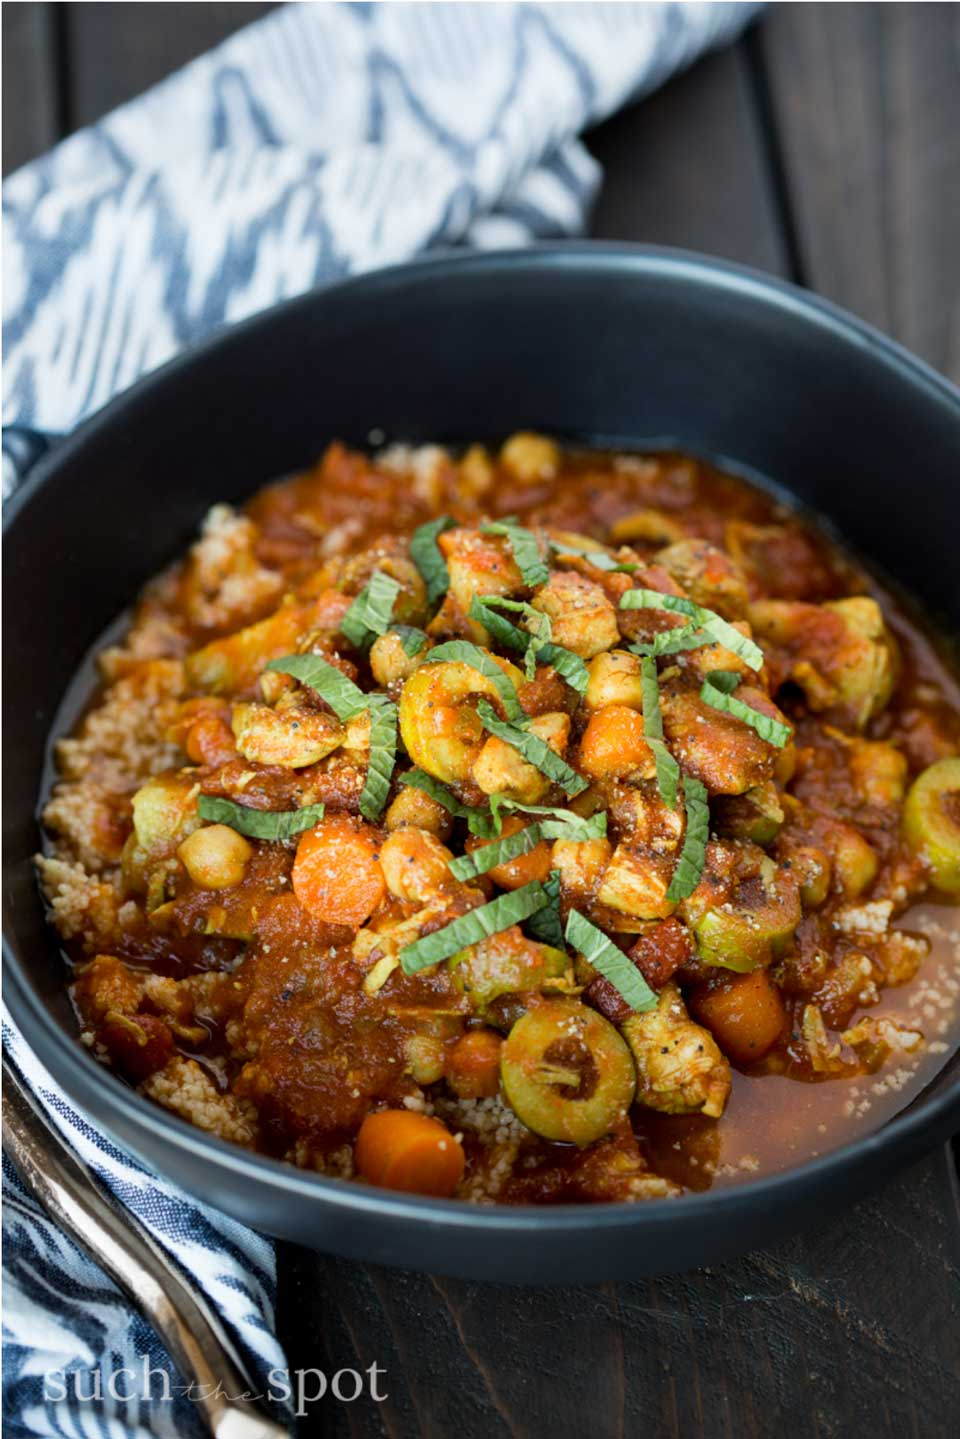 Great flavor twist! Instant Pot Moroccan Chicken Stew from Darcie at Such the Spot is a healthier alternative – be sure to check out all our great stew recipe ideas, plus healthy tips and tricks, too!